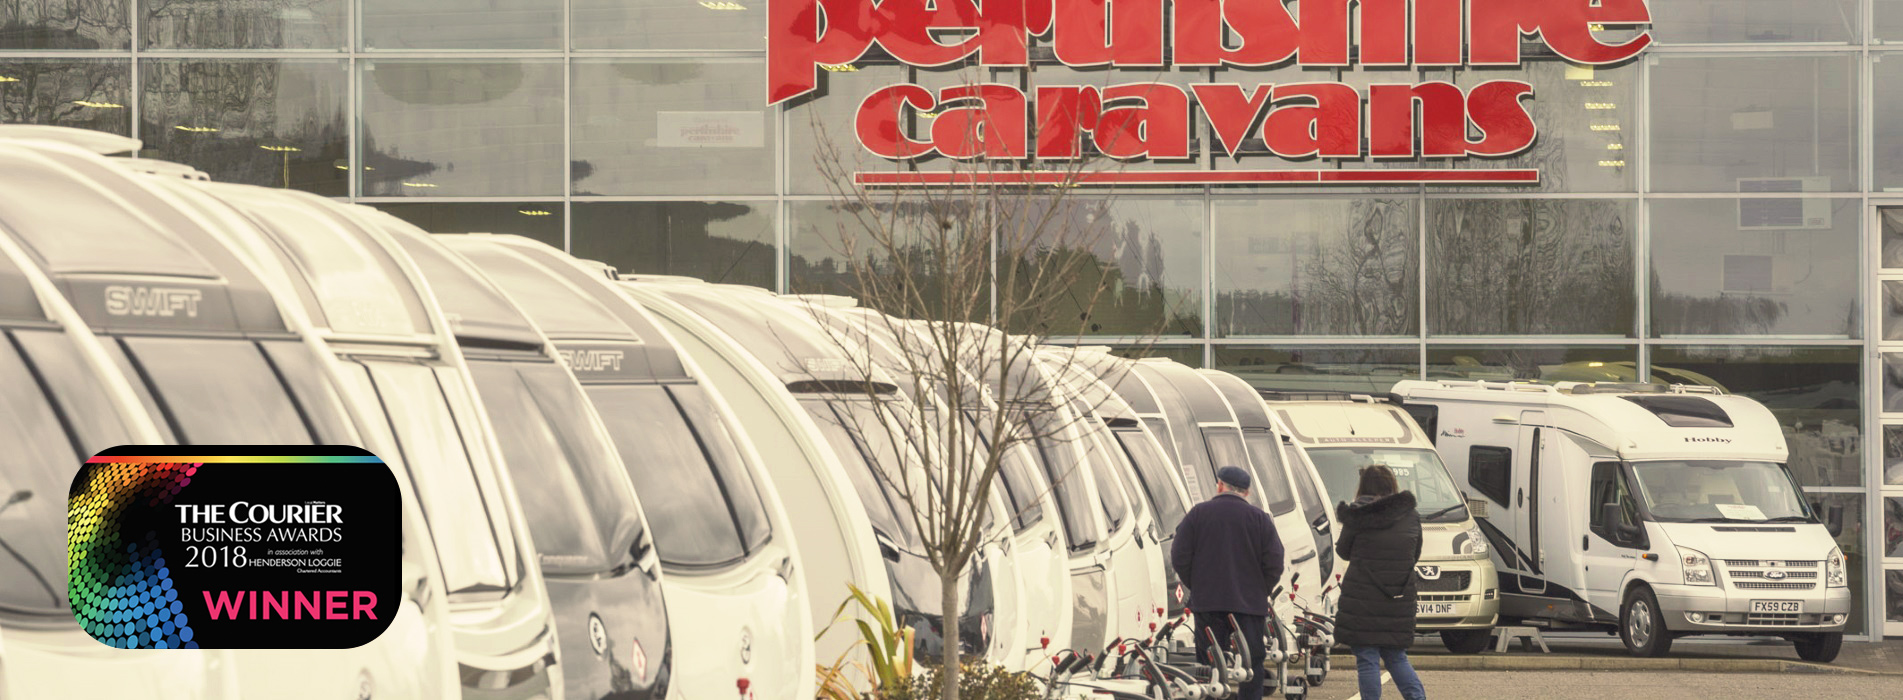 Pethshire Caravans Showroom